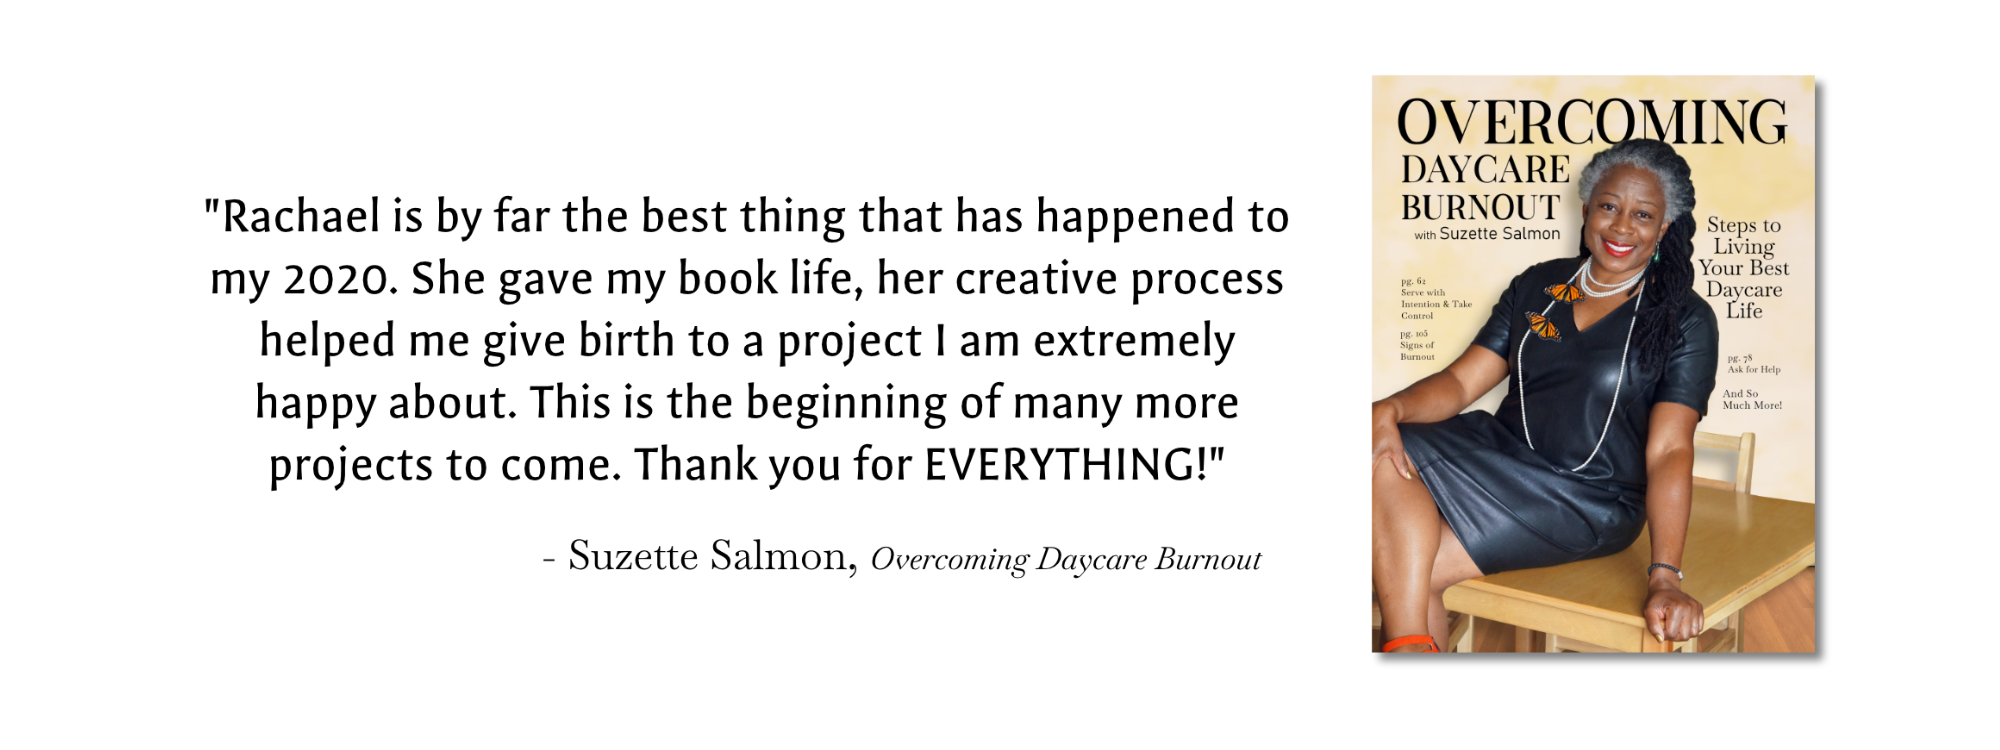 Book design Recommendation from Suzette Salmon